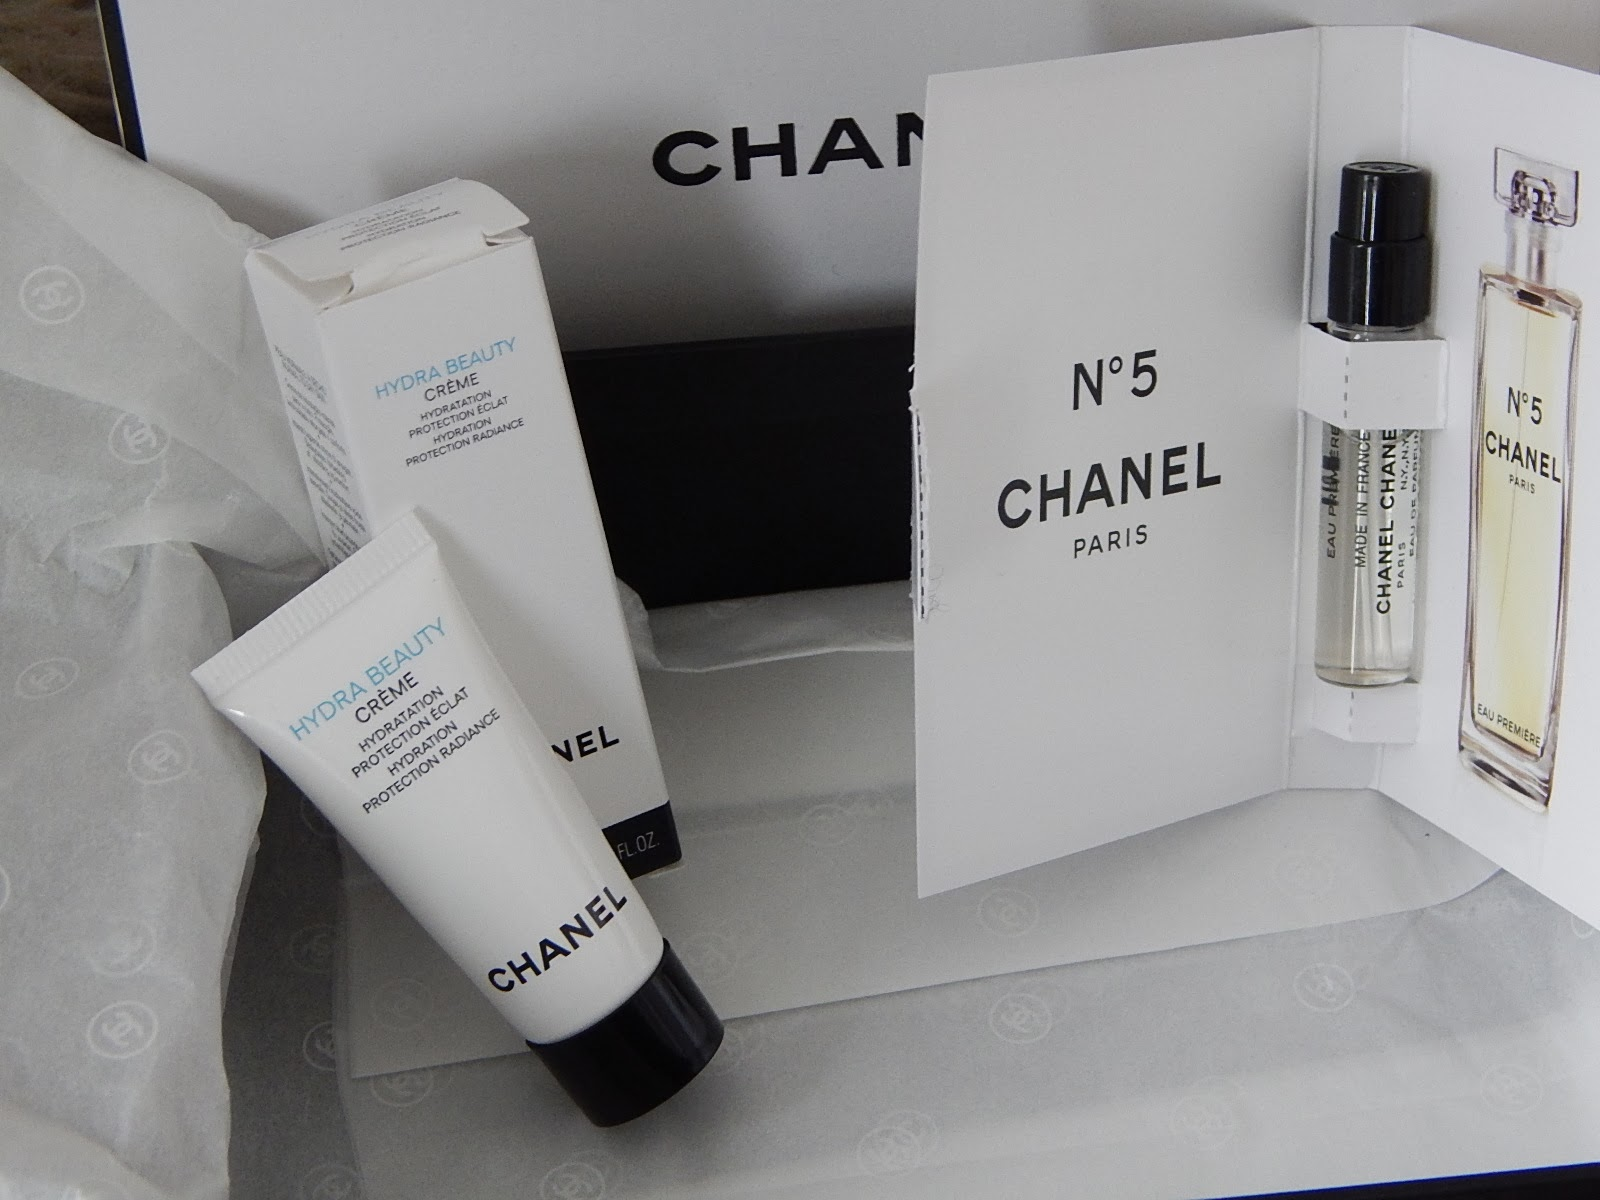 12459351309c Lastly, I just thought I'd quickly show you the little samples that came  with it (I love how Chanel are cool about giving samples, some brands can  be so ...